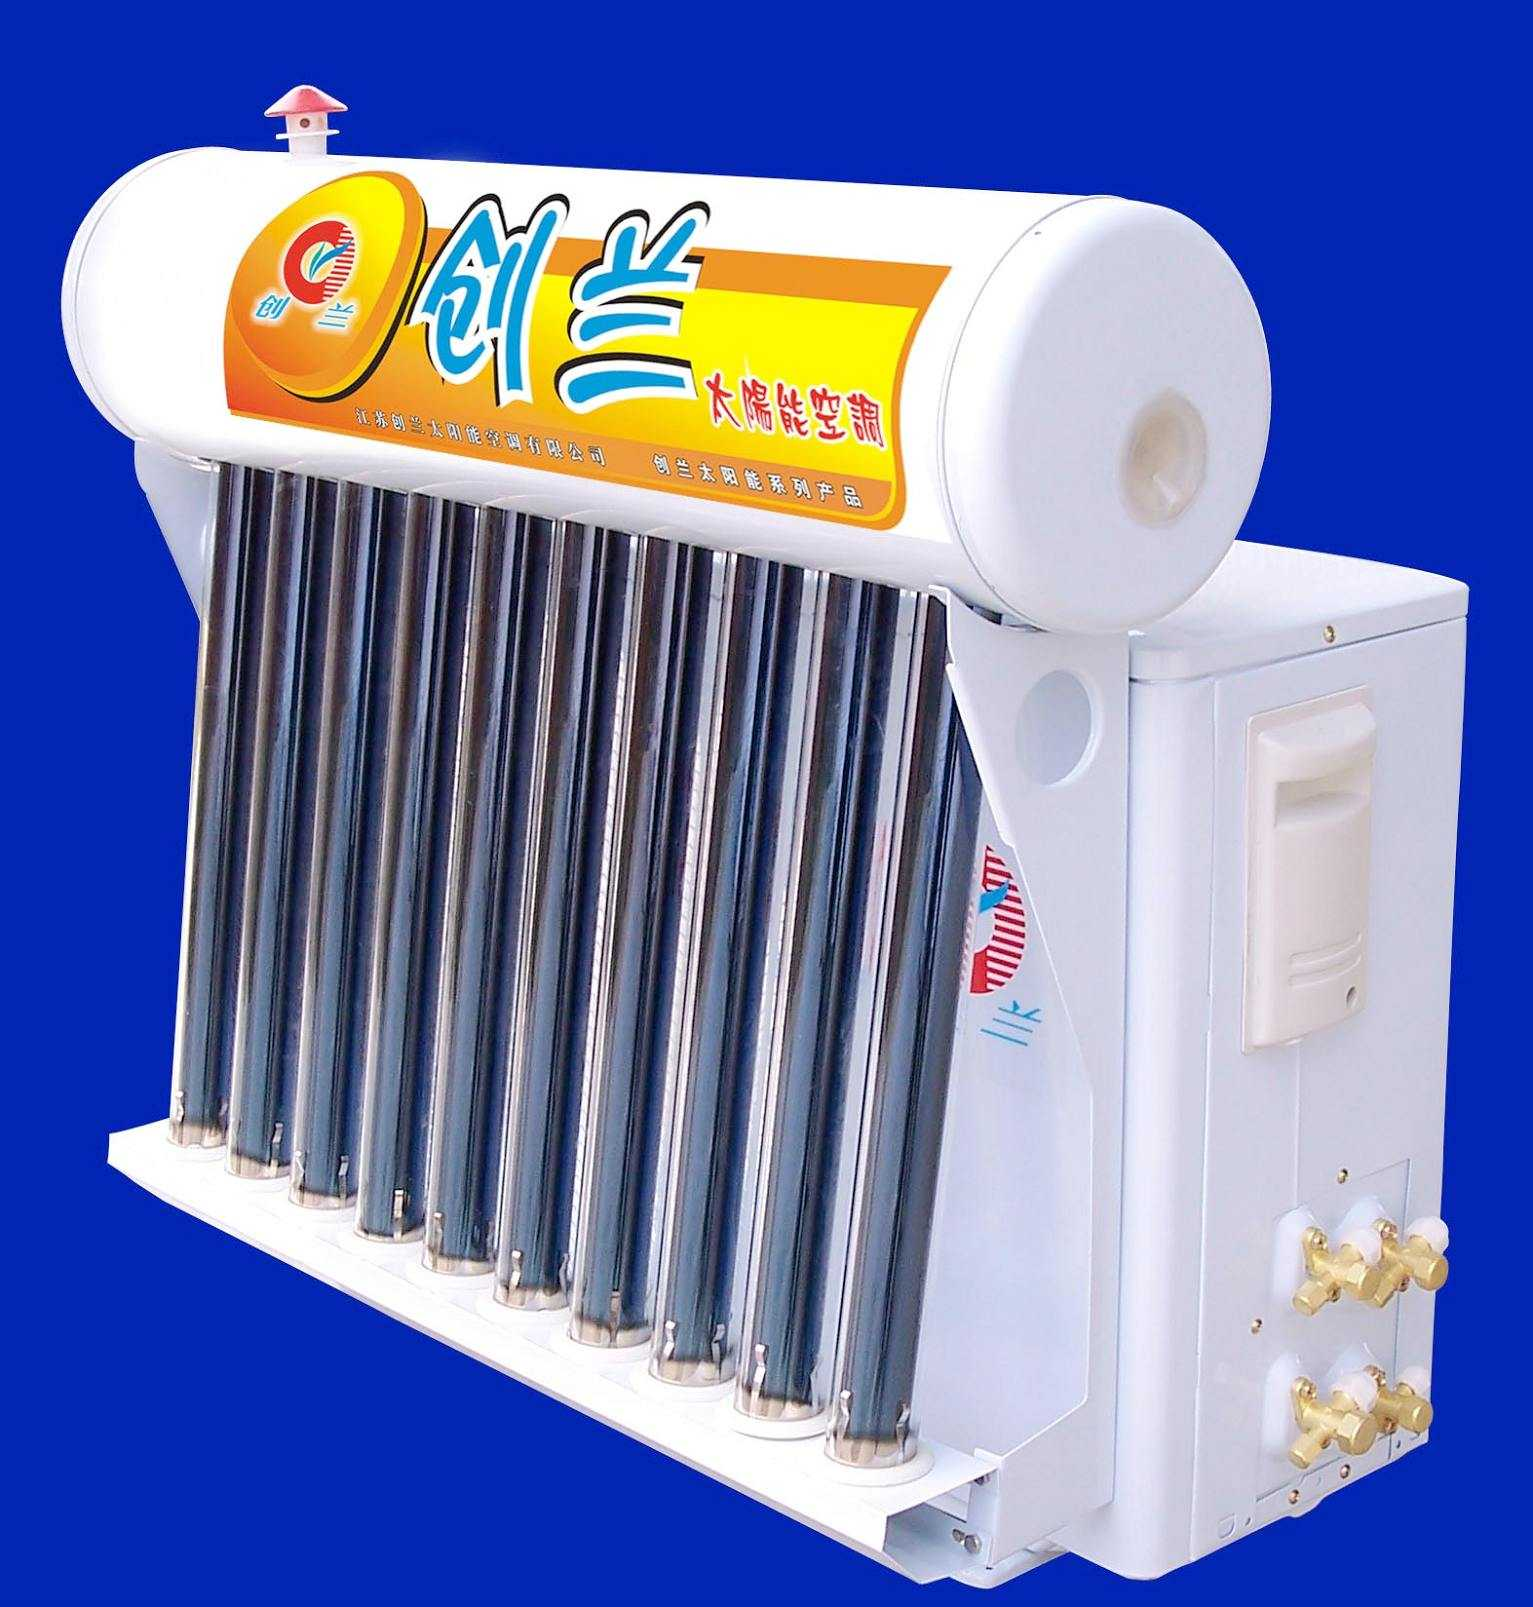 wall mounted type solar air conditioner normal pressure duct type air  #0126B4